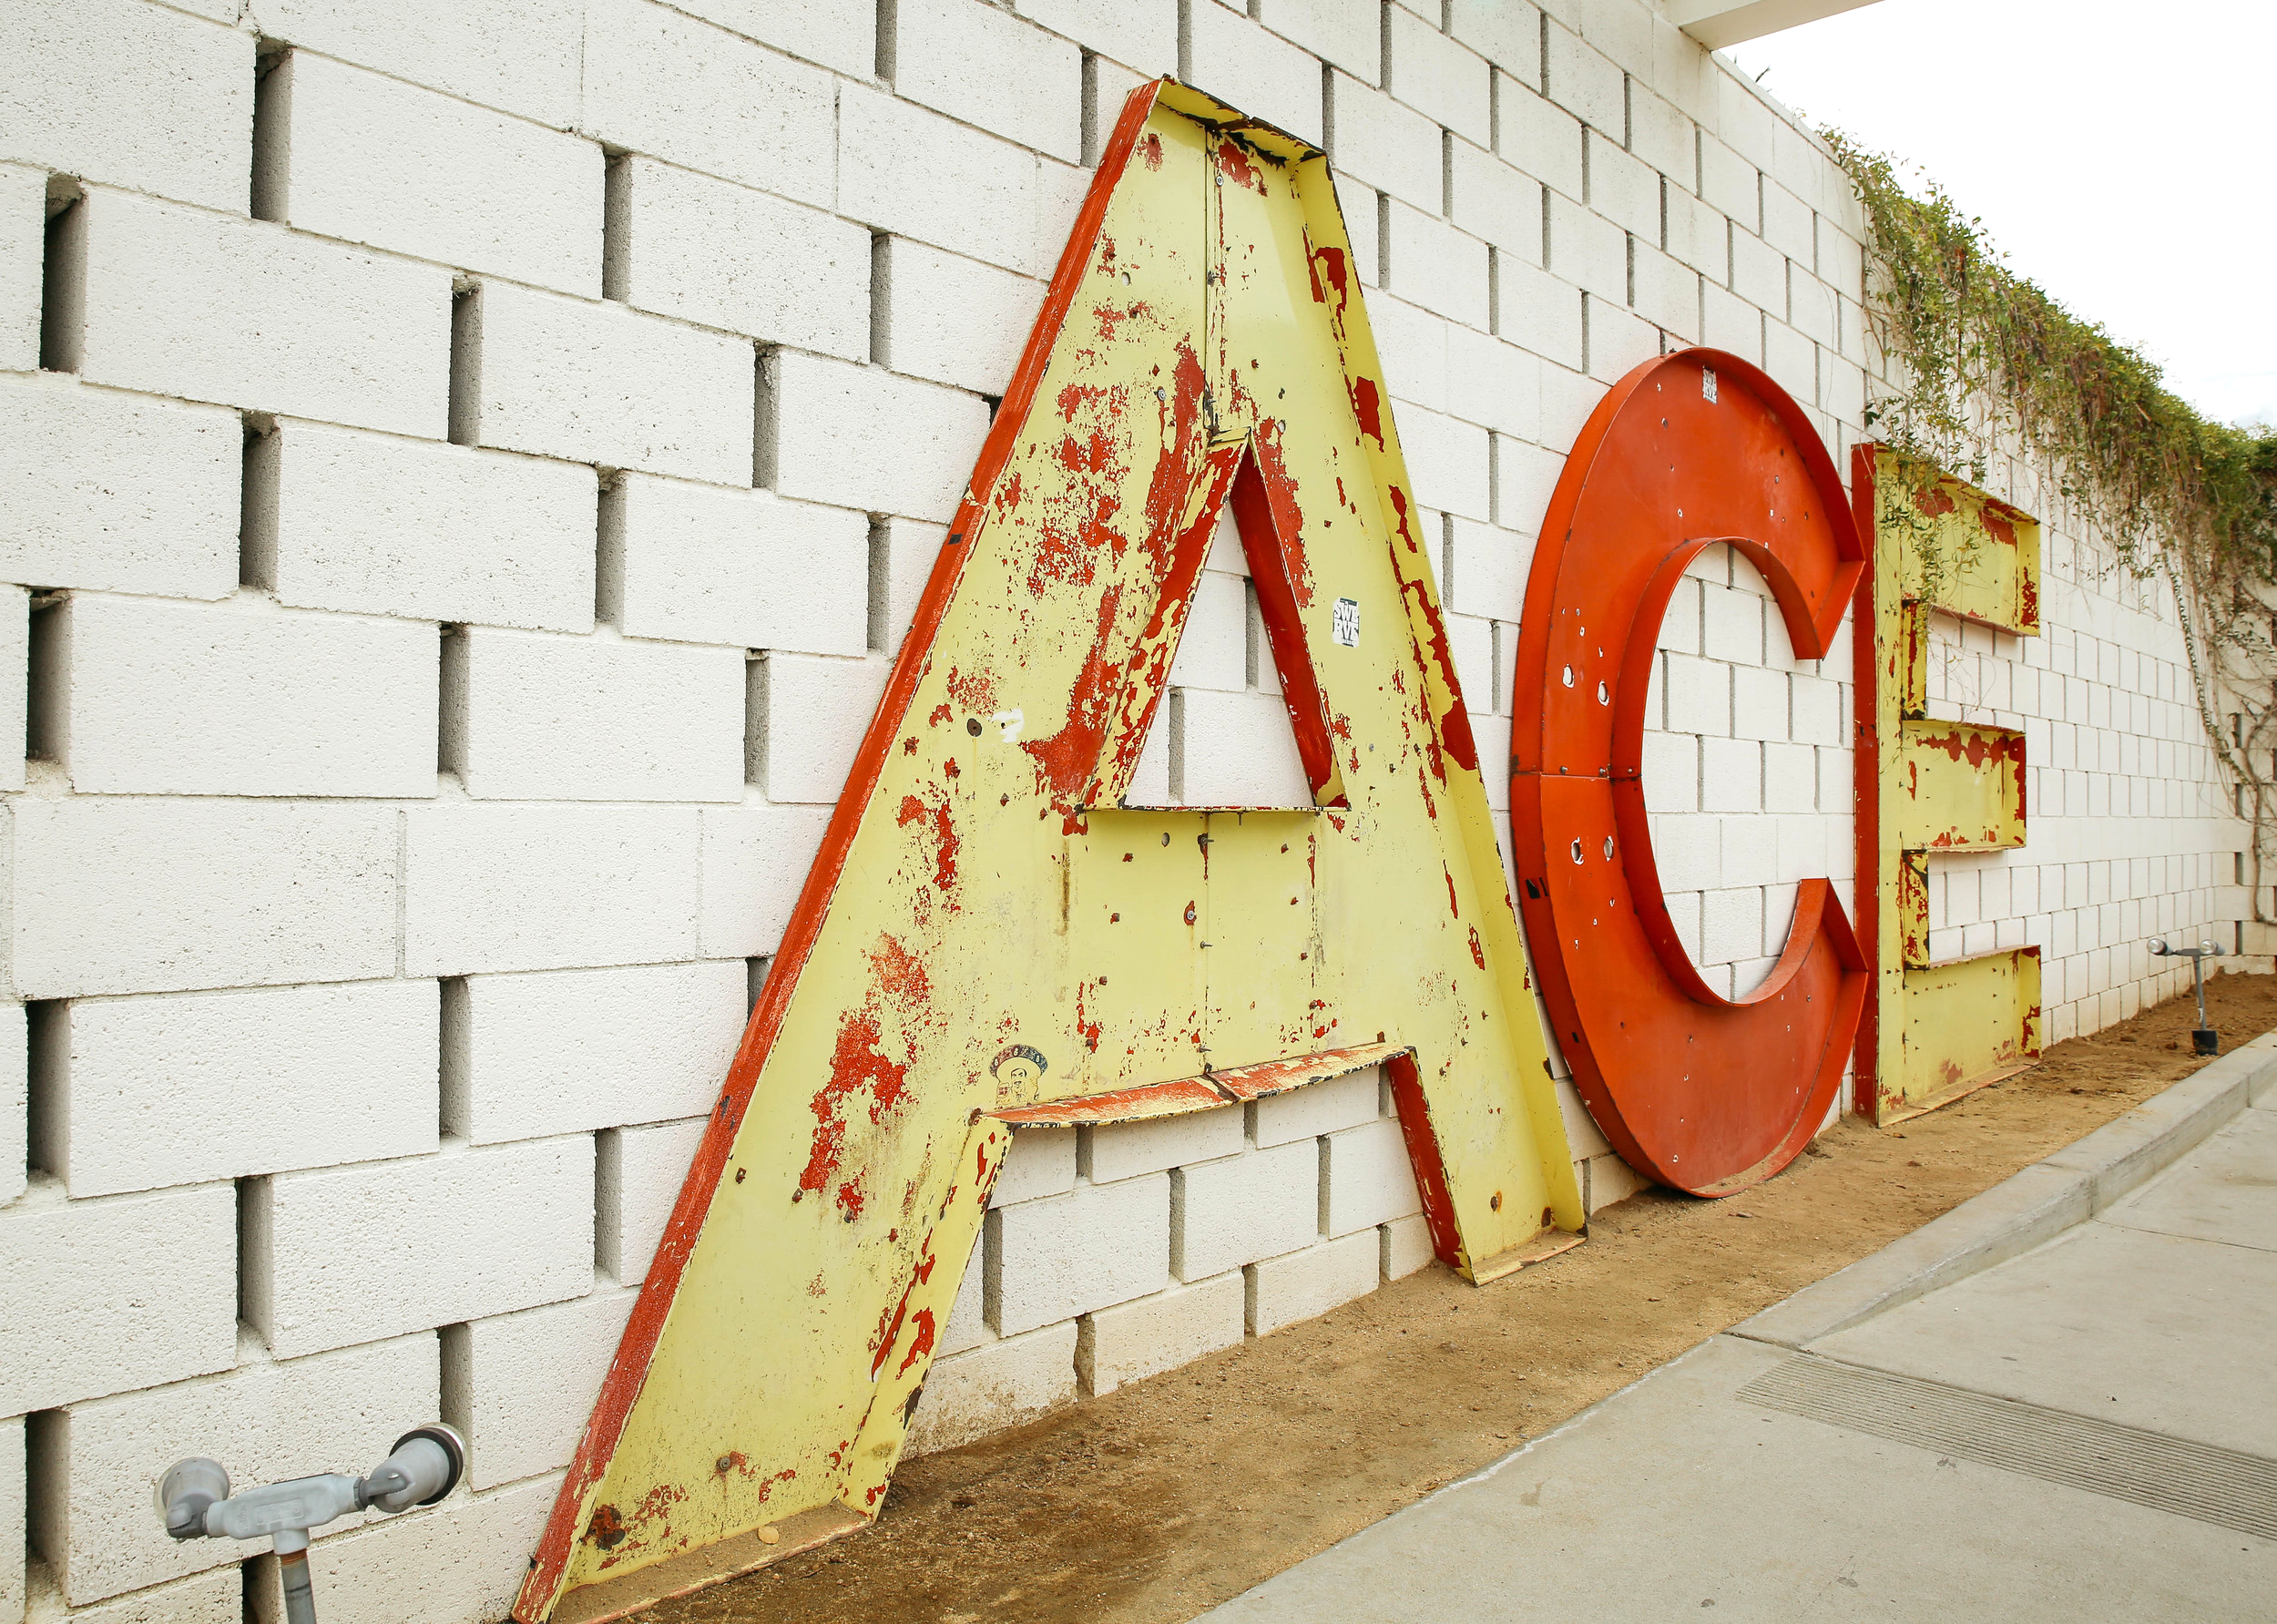 Upon arrival at the Ace Hotel and Swim Club you'll be greeted by their iconic ACE sign.